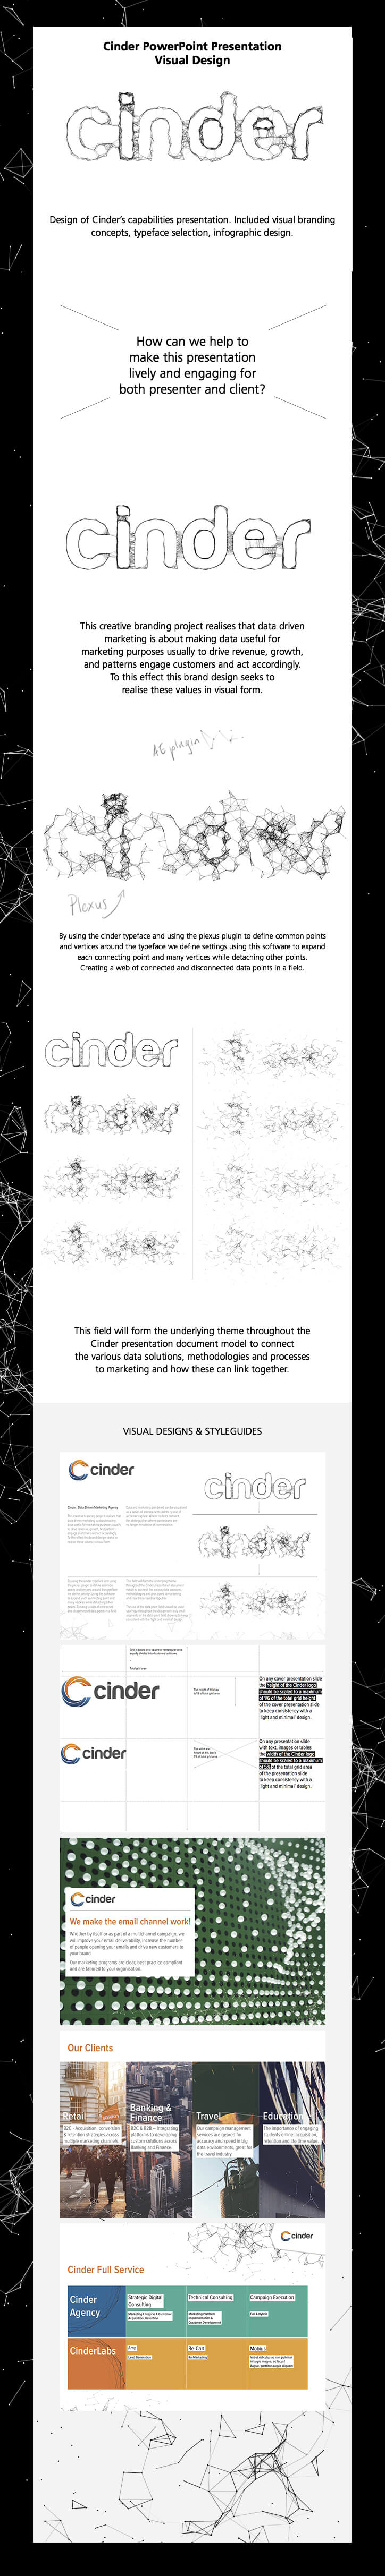 CaseStudy_Cinder_VisualDesign